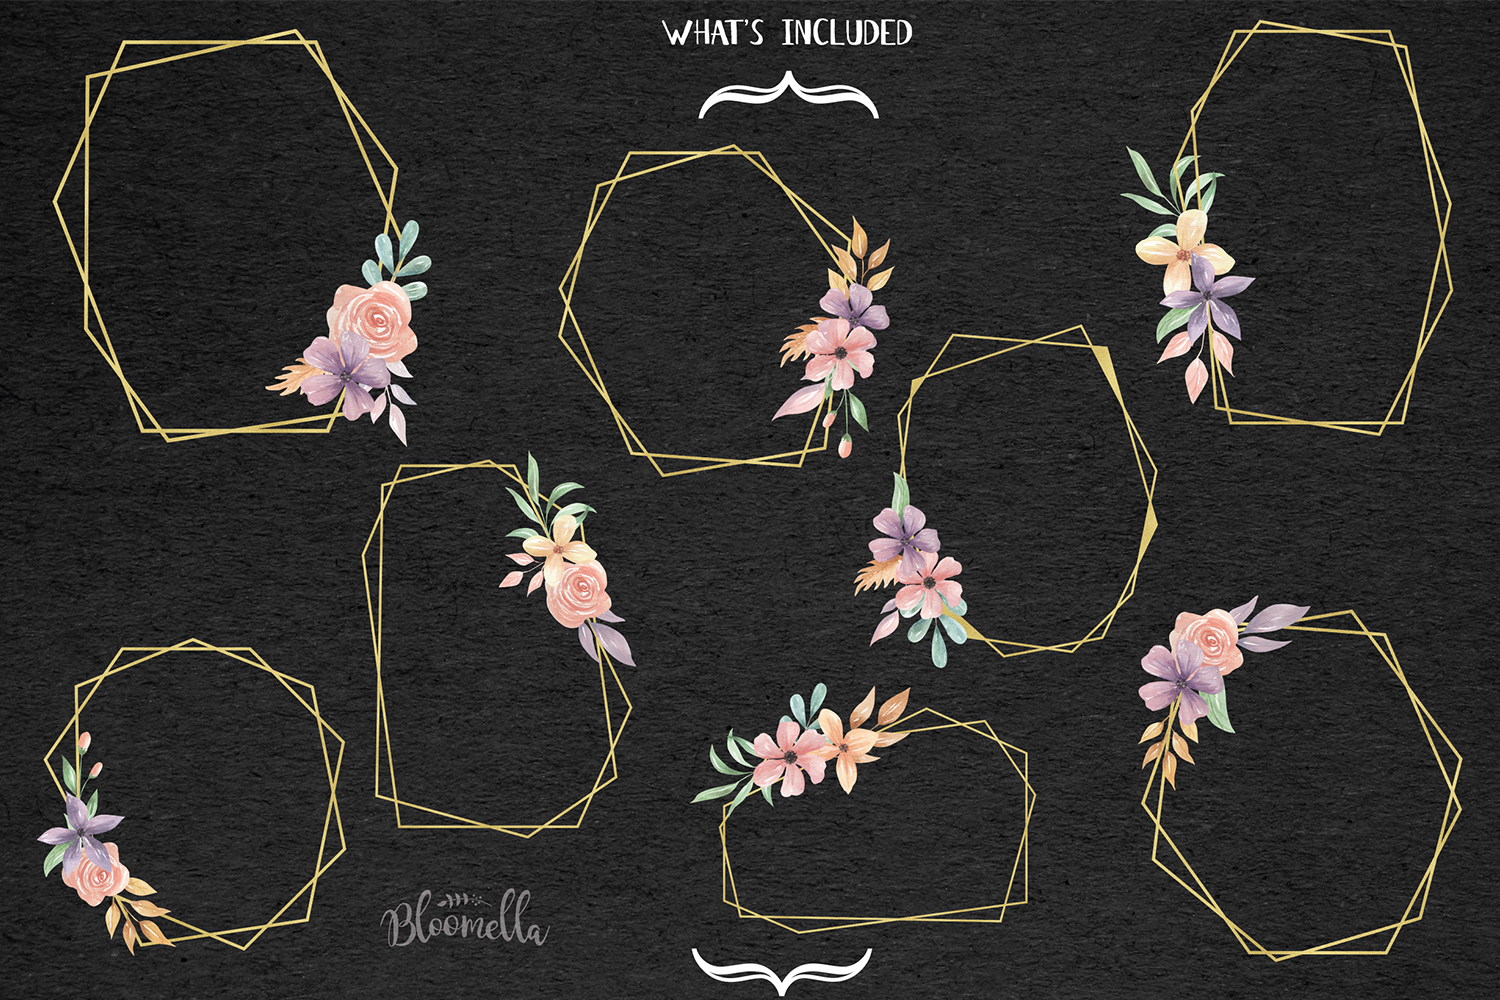 Gold 8 Frames Watercolor Floral Border Flowers Clipart example image 5